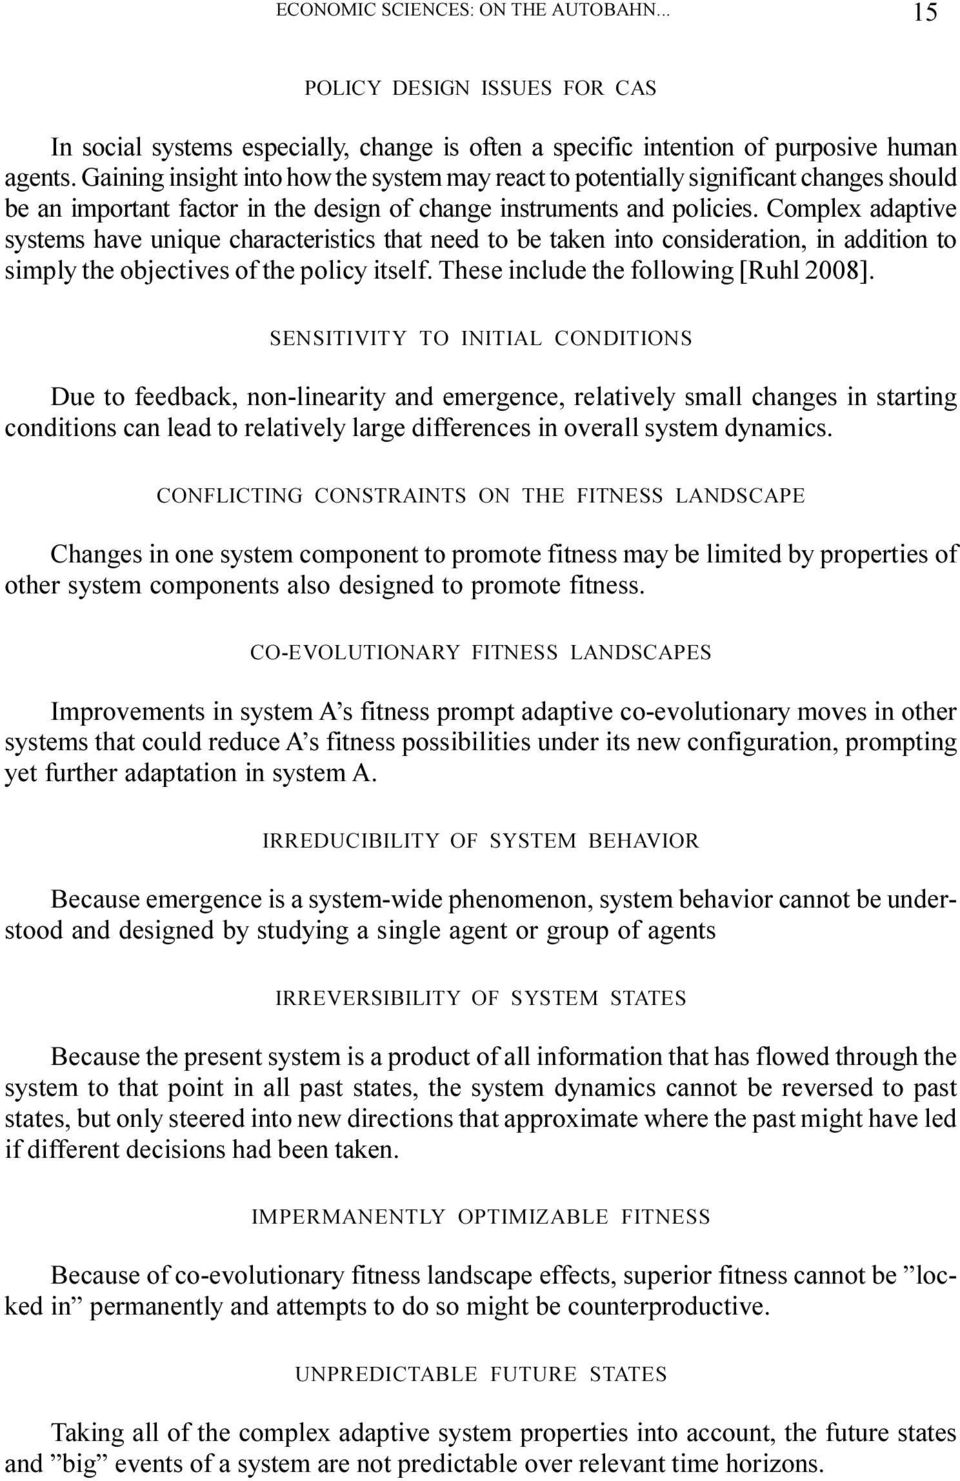 Complex adaptive systems have unique characteristics that need to be taken into consideration, in addition to simply the objectives of the policy itself. These include the following [Ruhl 2008].